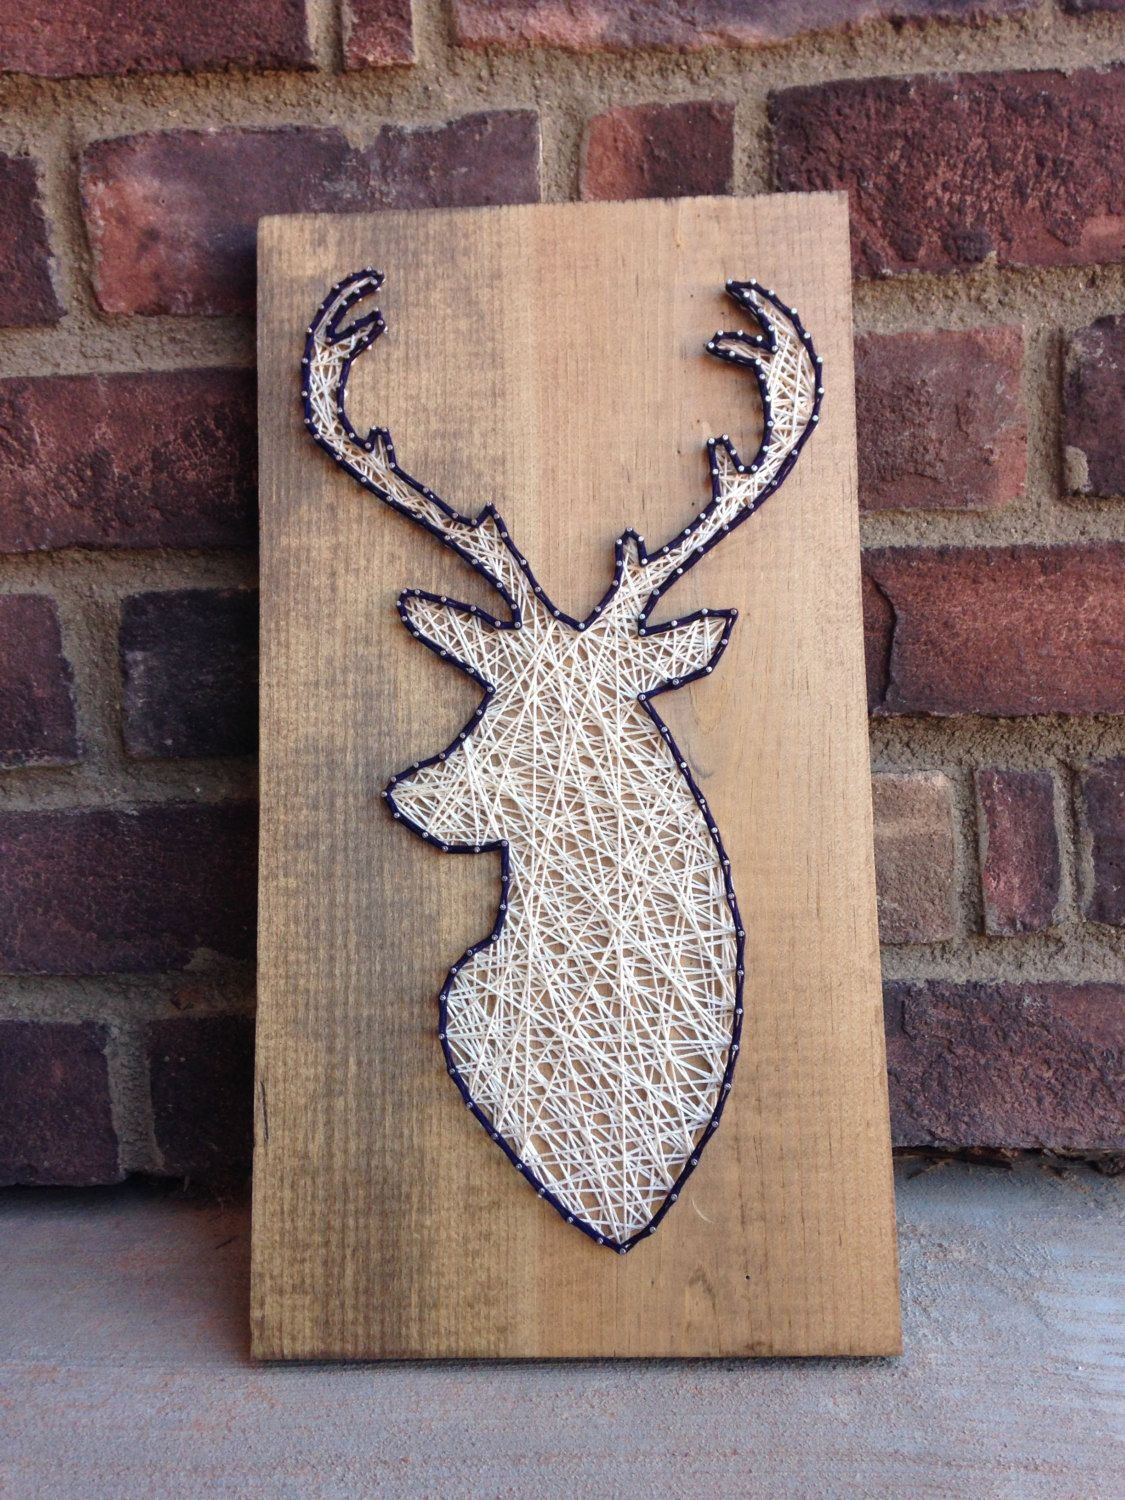 Woodland Rustic Elk String Art Deer Buck Home decor Nursery Decor wood sign nail art baby shower gift fathers day gift from my Etsy shop https://www.etsy.com/listing/479908283/woodland-rustic-elk-string-art-deer-buck